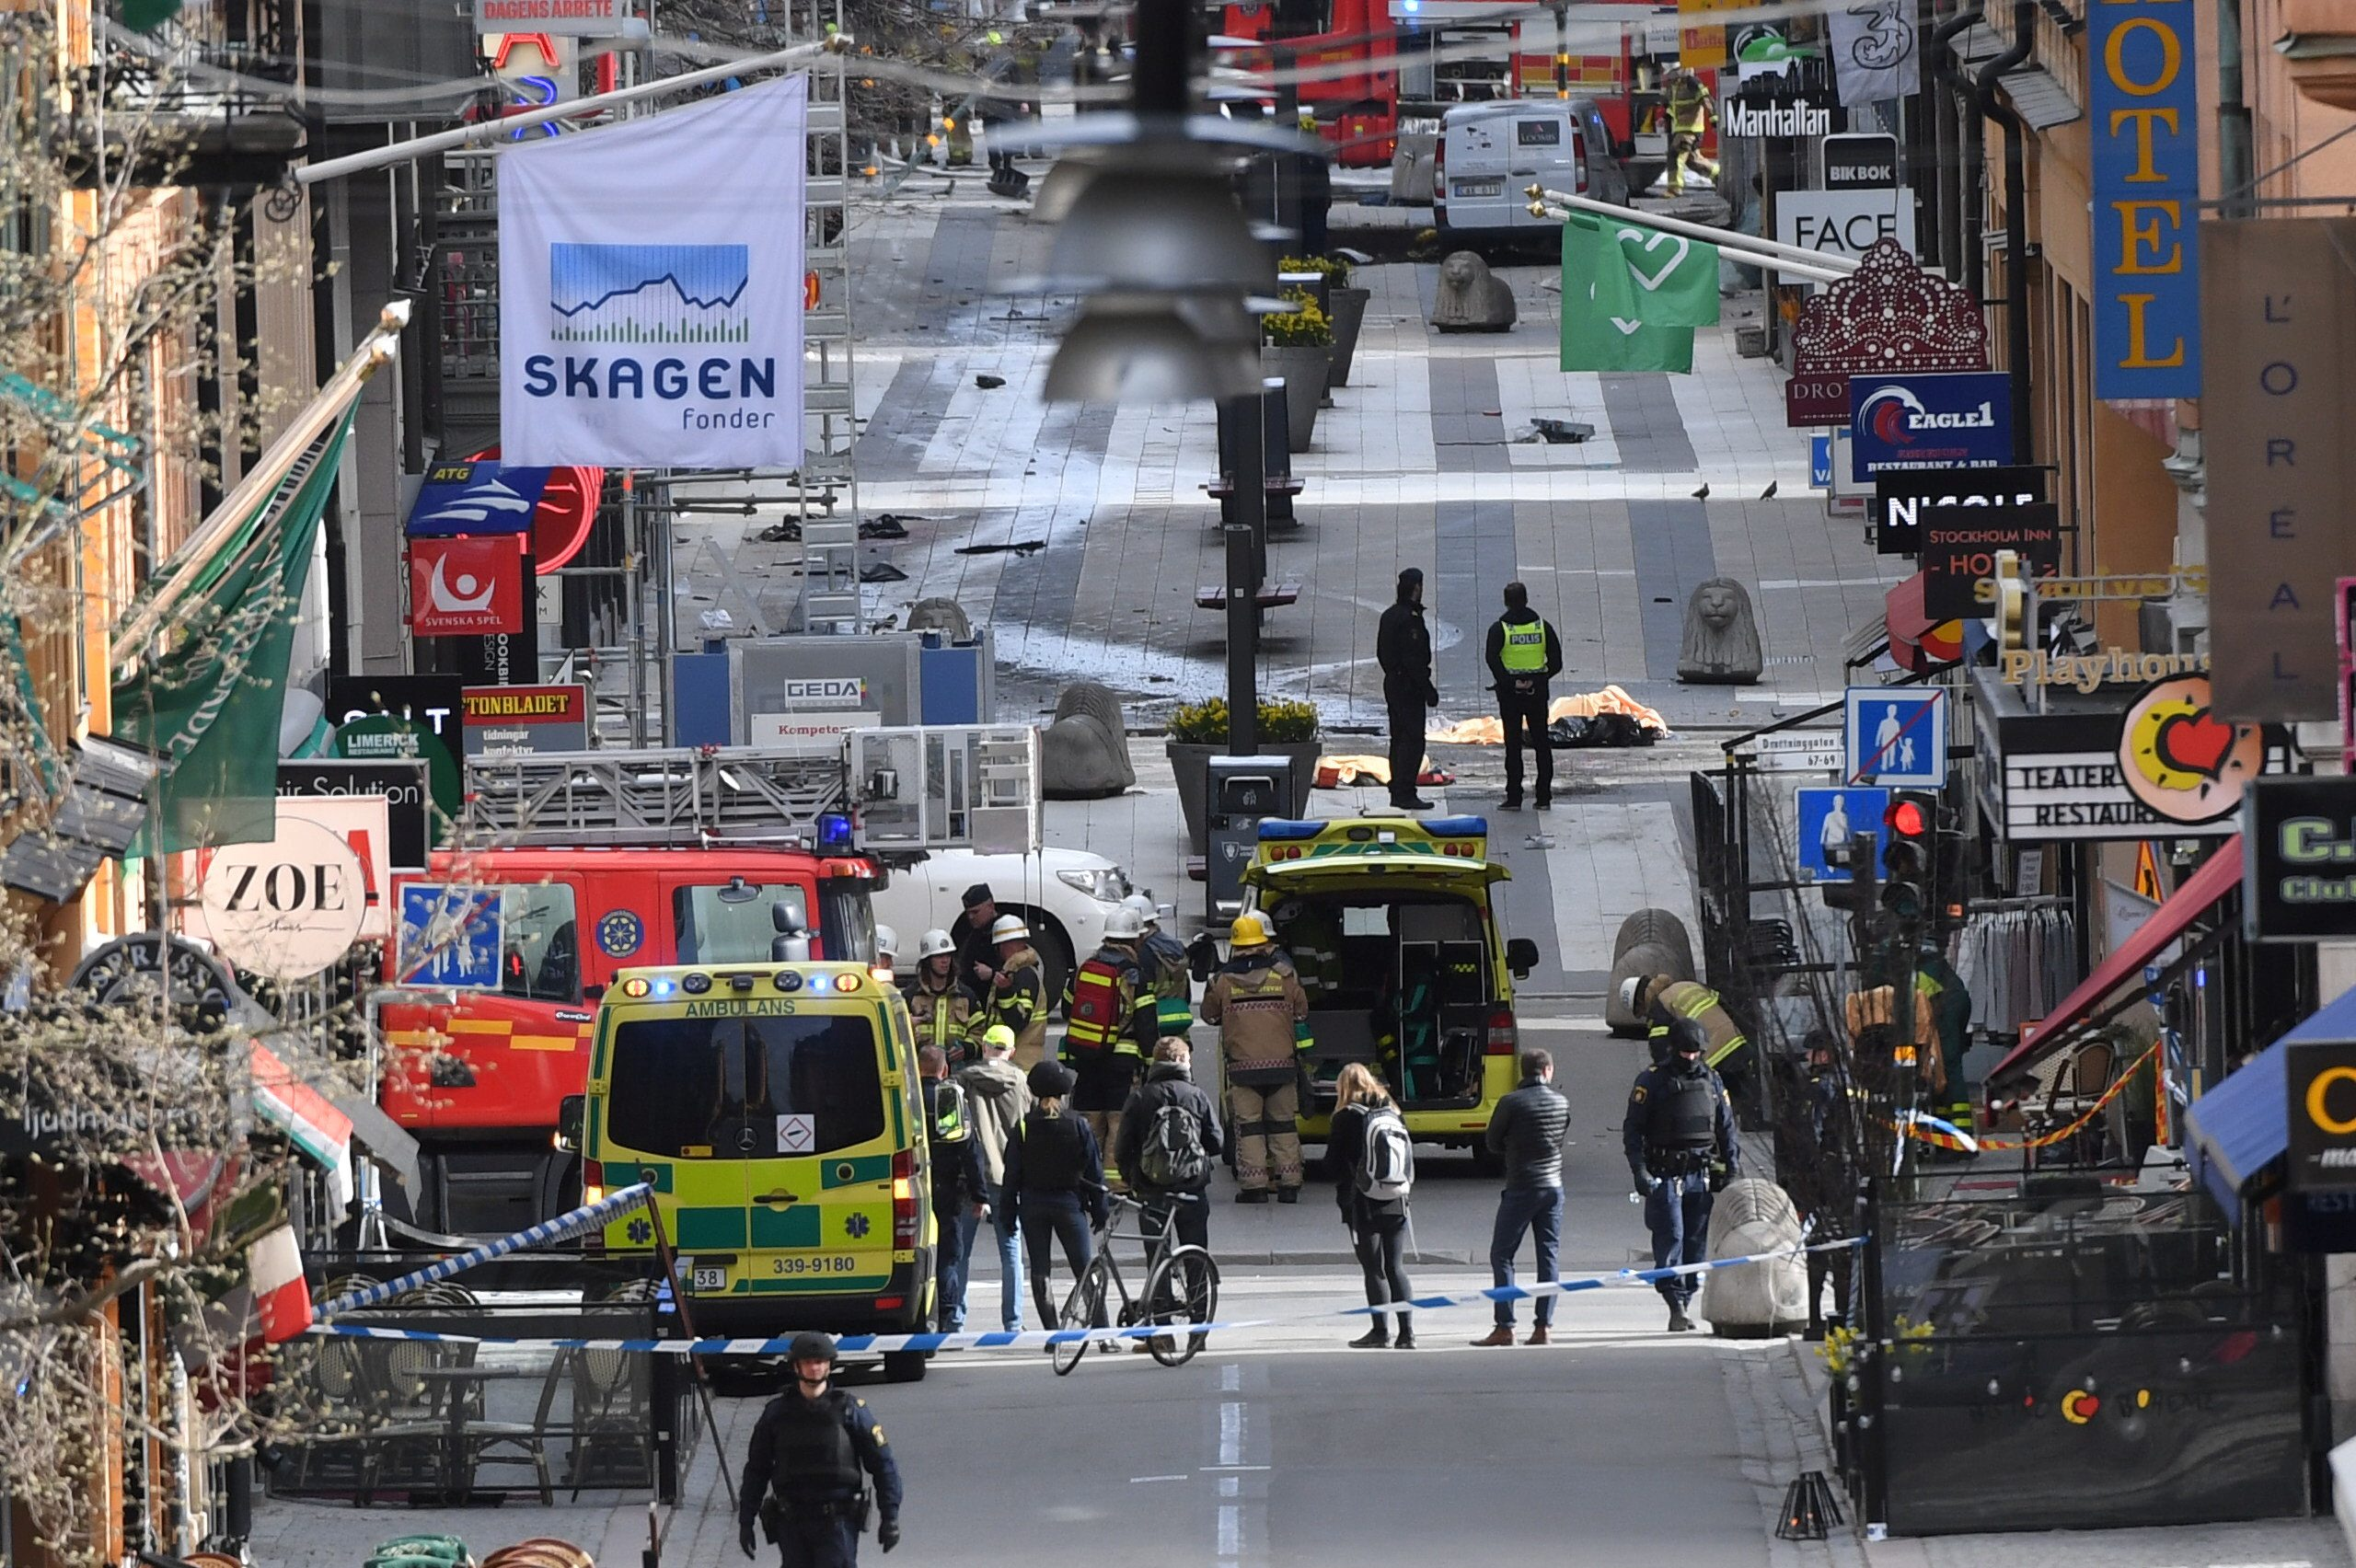 A view of the street where several people were killed and injured when a truck crashed into department store Ahlens, in central Stockholm, Sweden, April 7, 2017. Fredrik Sandberg/TT News Agency via REUTERS      ATTENTION EDITORS - THIS IMAGE WAS PROVIDED BY A THIRD PARTY. FOR EDITORIAL USE ONLY. SWEDEN OUT. NO COMMERCIAL OR EDITORIAL SALES IN SWEDEN